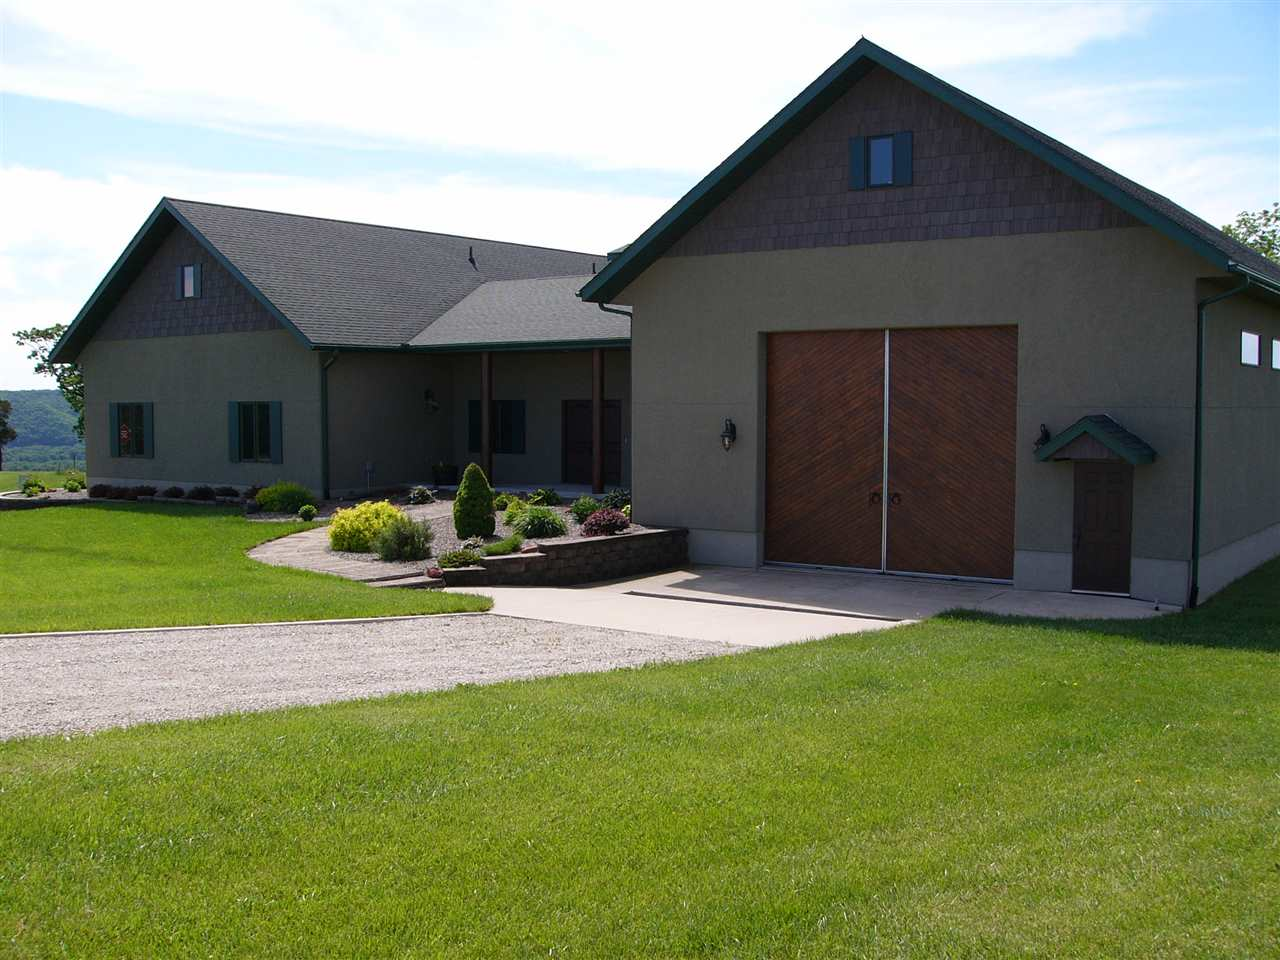 2218 HARPERS HIGHLAND LN, Harpers Ferry, IA 52146